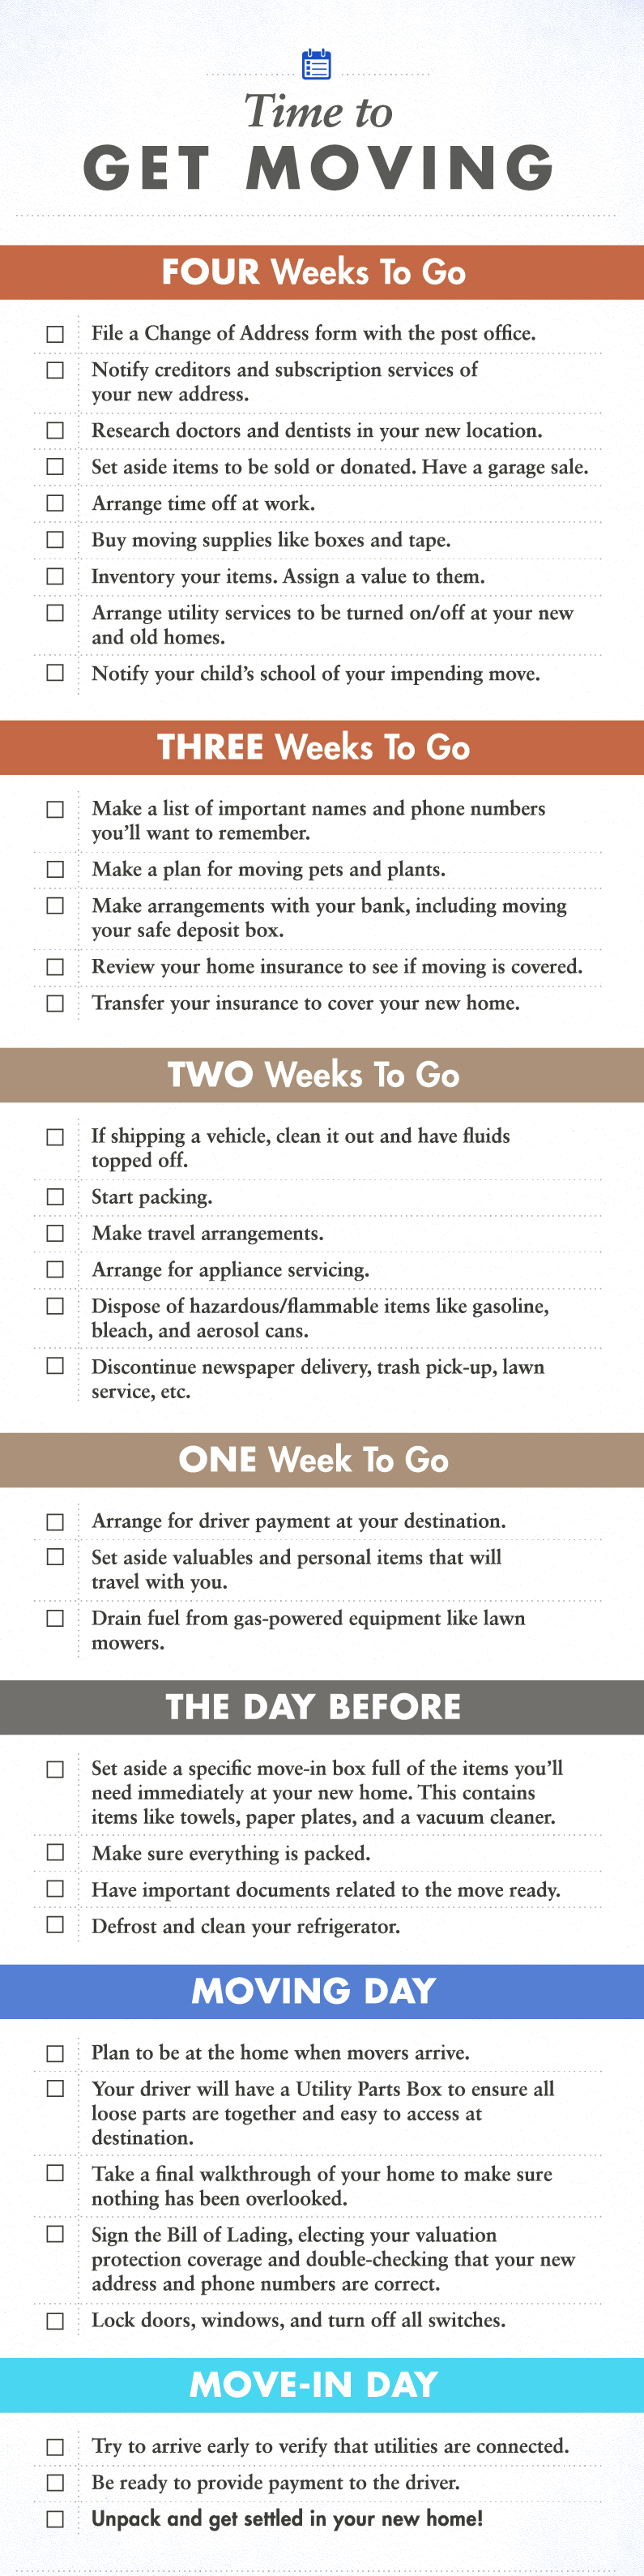 Moving-Checklist-Infographic-Florida Moving Checklist: 4 Week Countdown Orlando | Central Florida